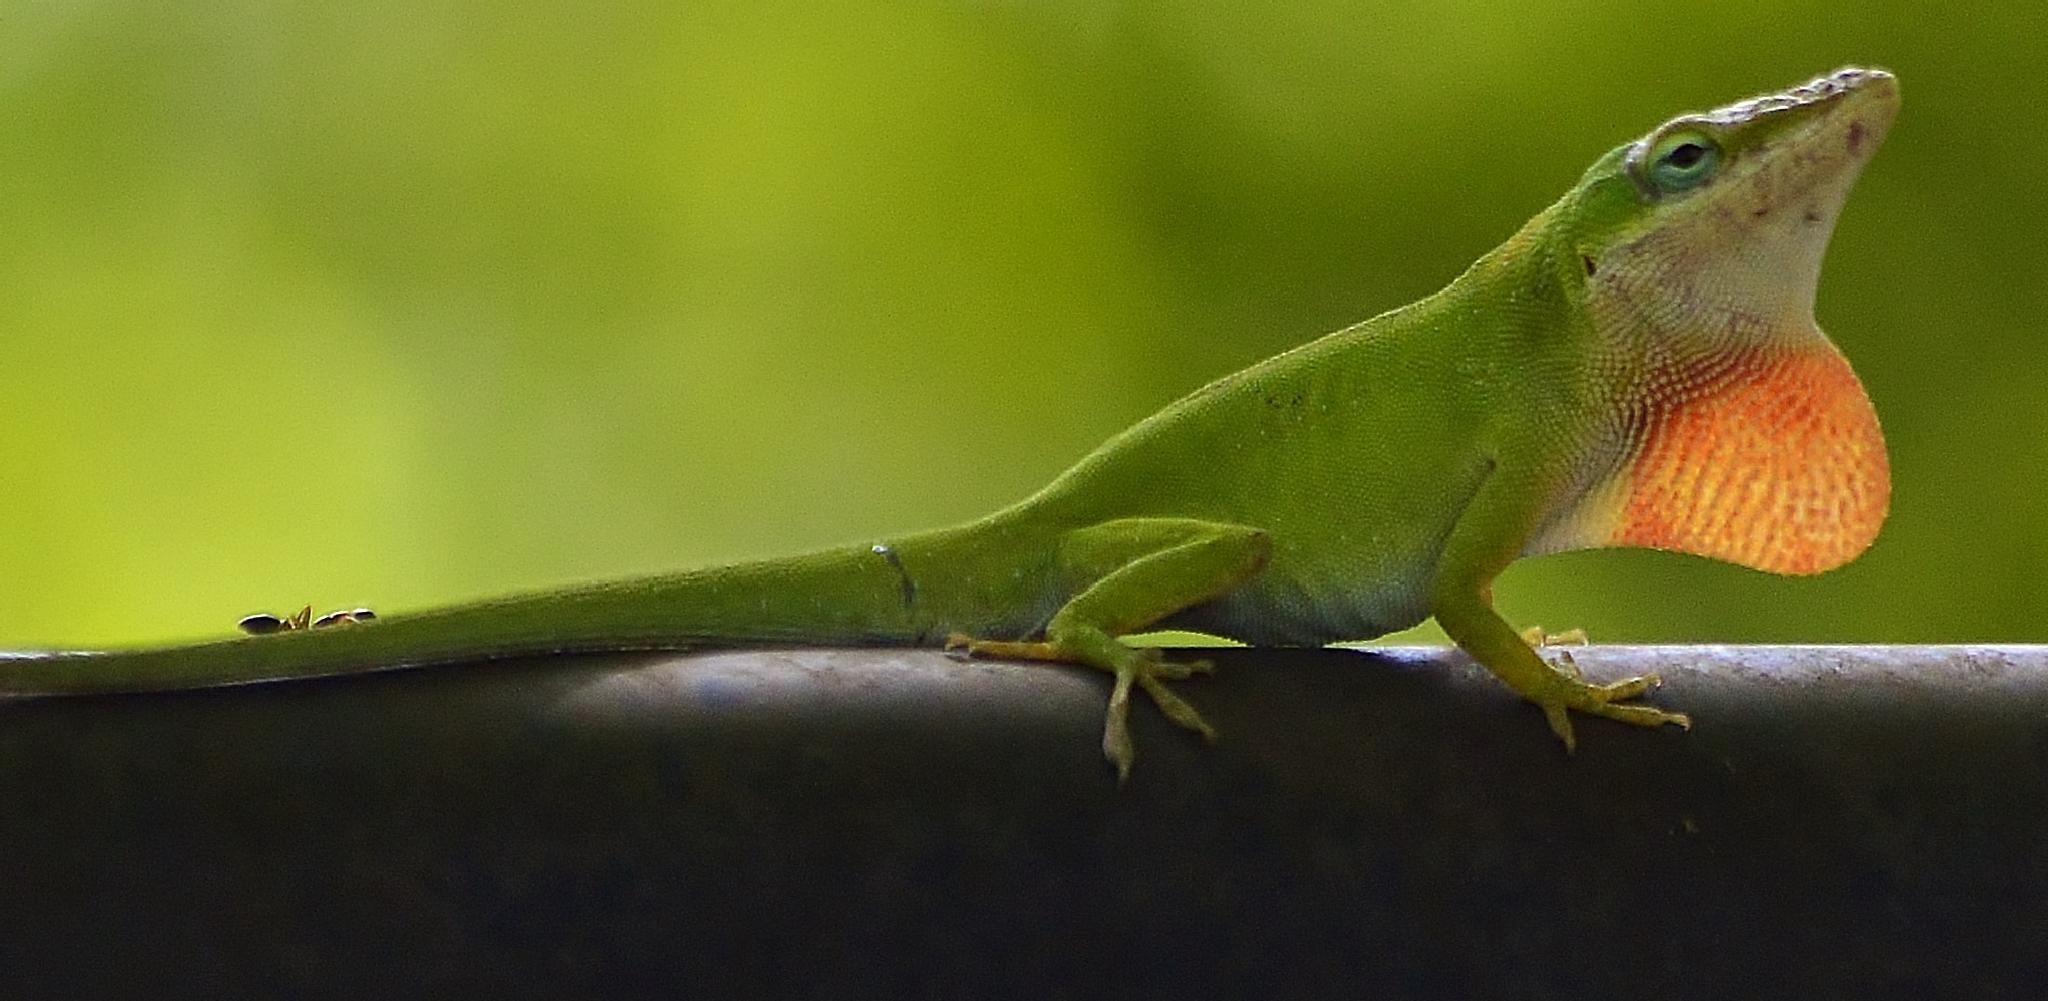 Carolina Green Anole by jamie.dorton